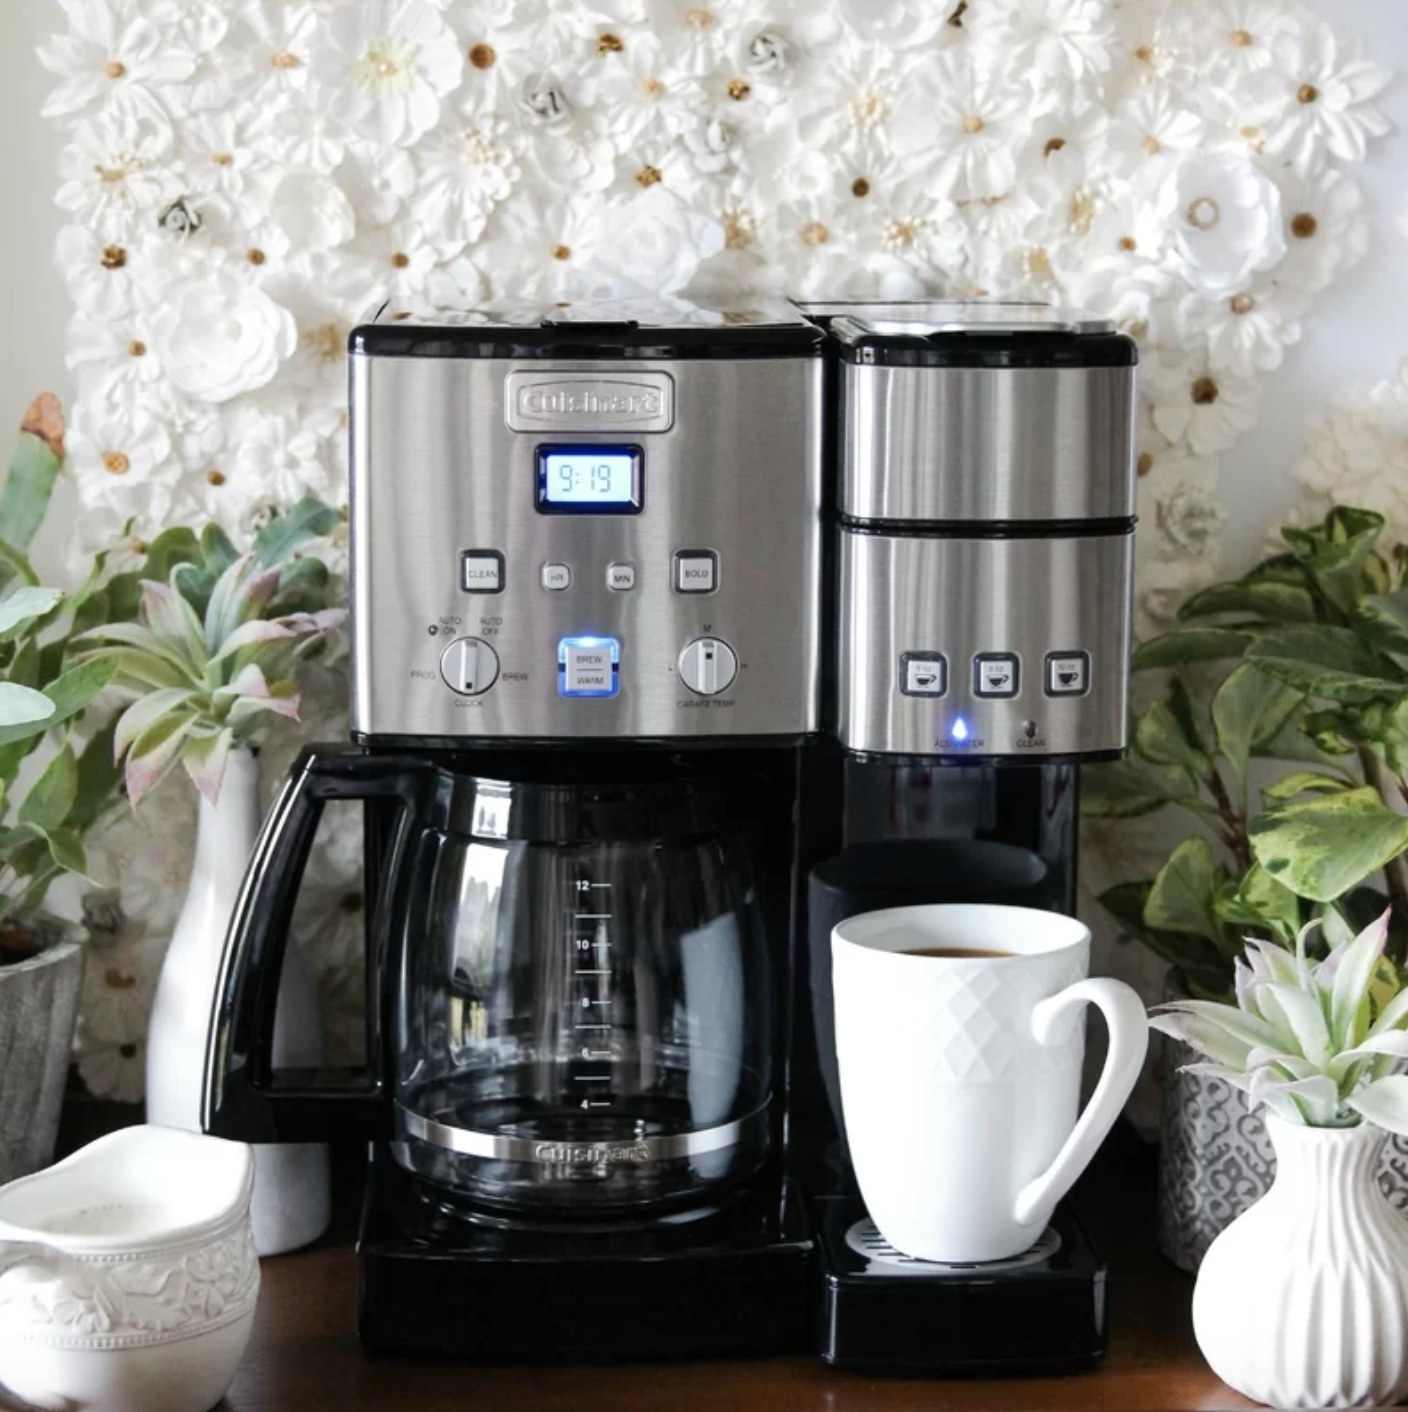 The Cuisinart coffee maker in silver